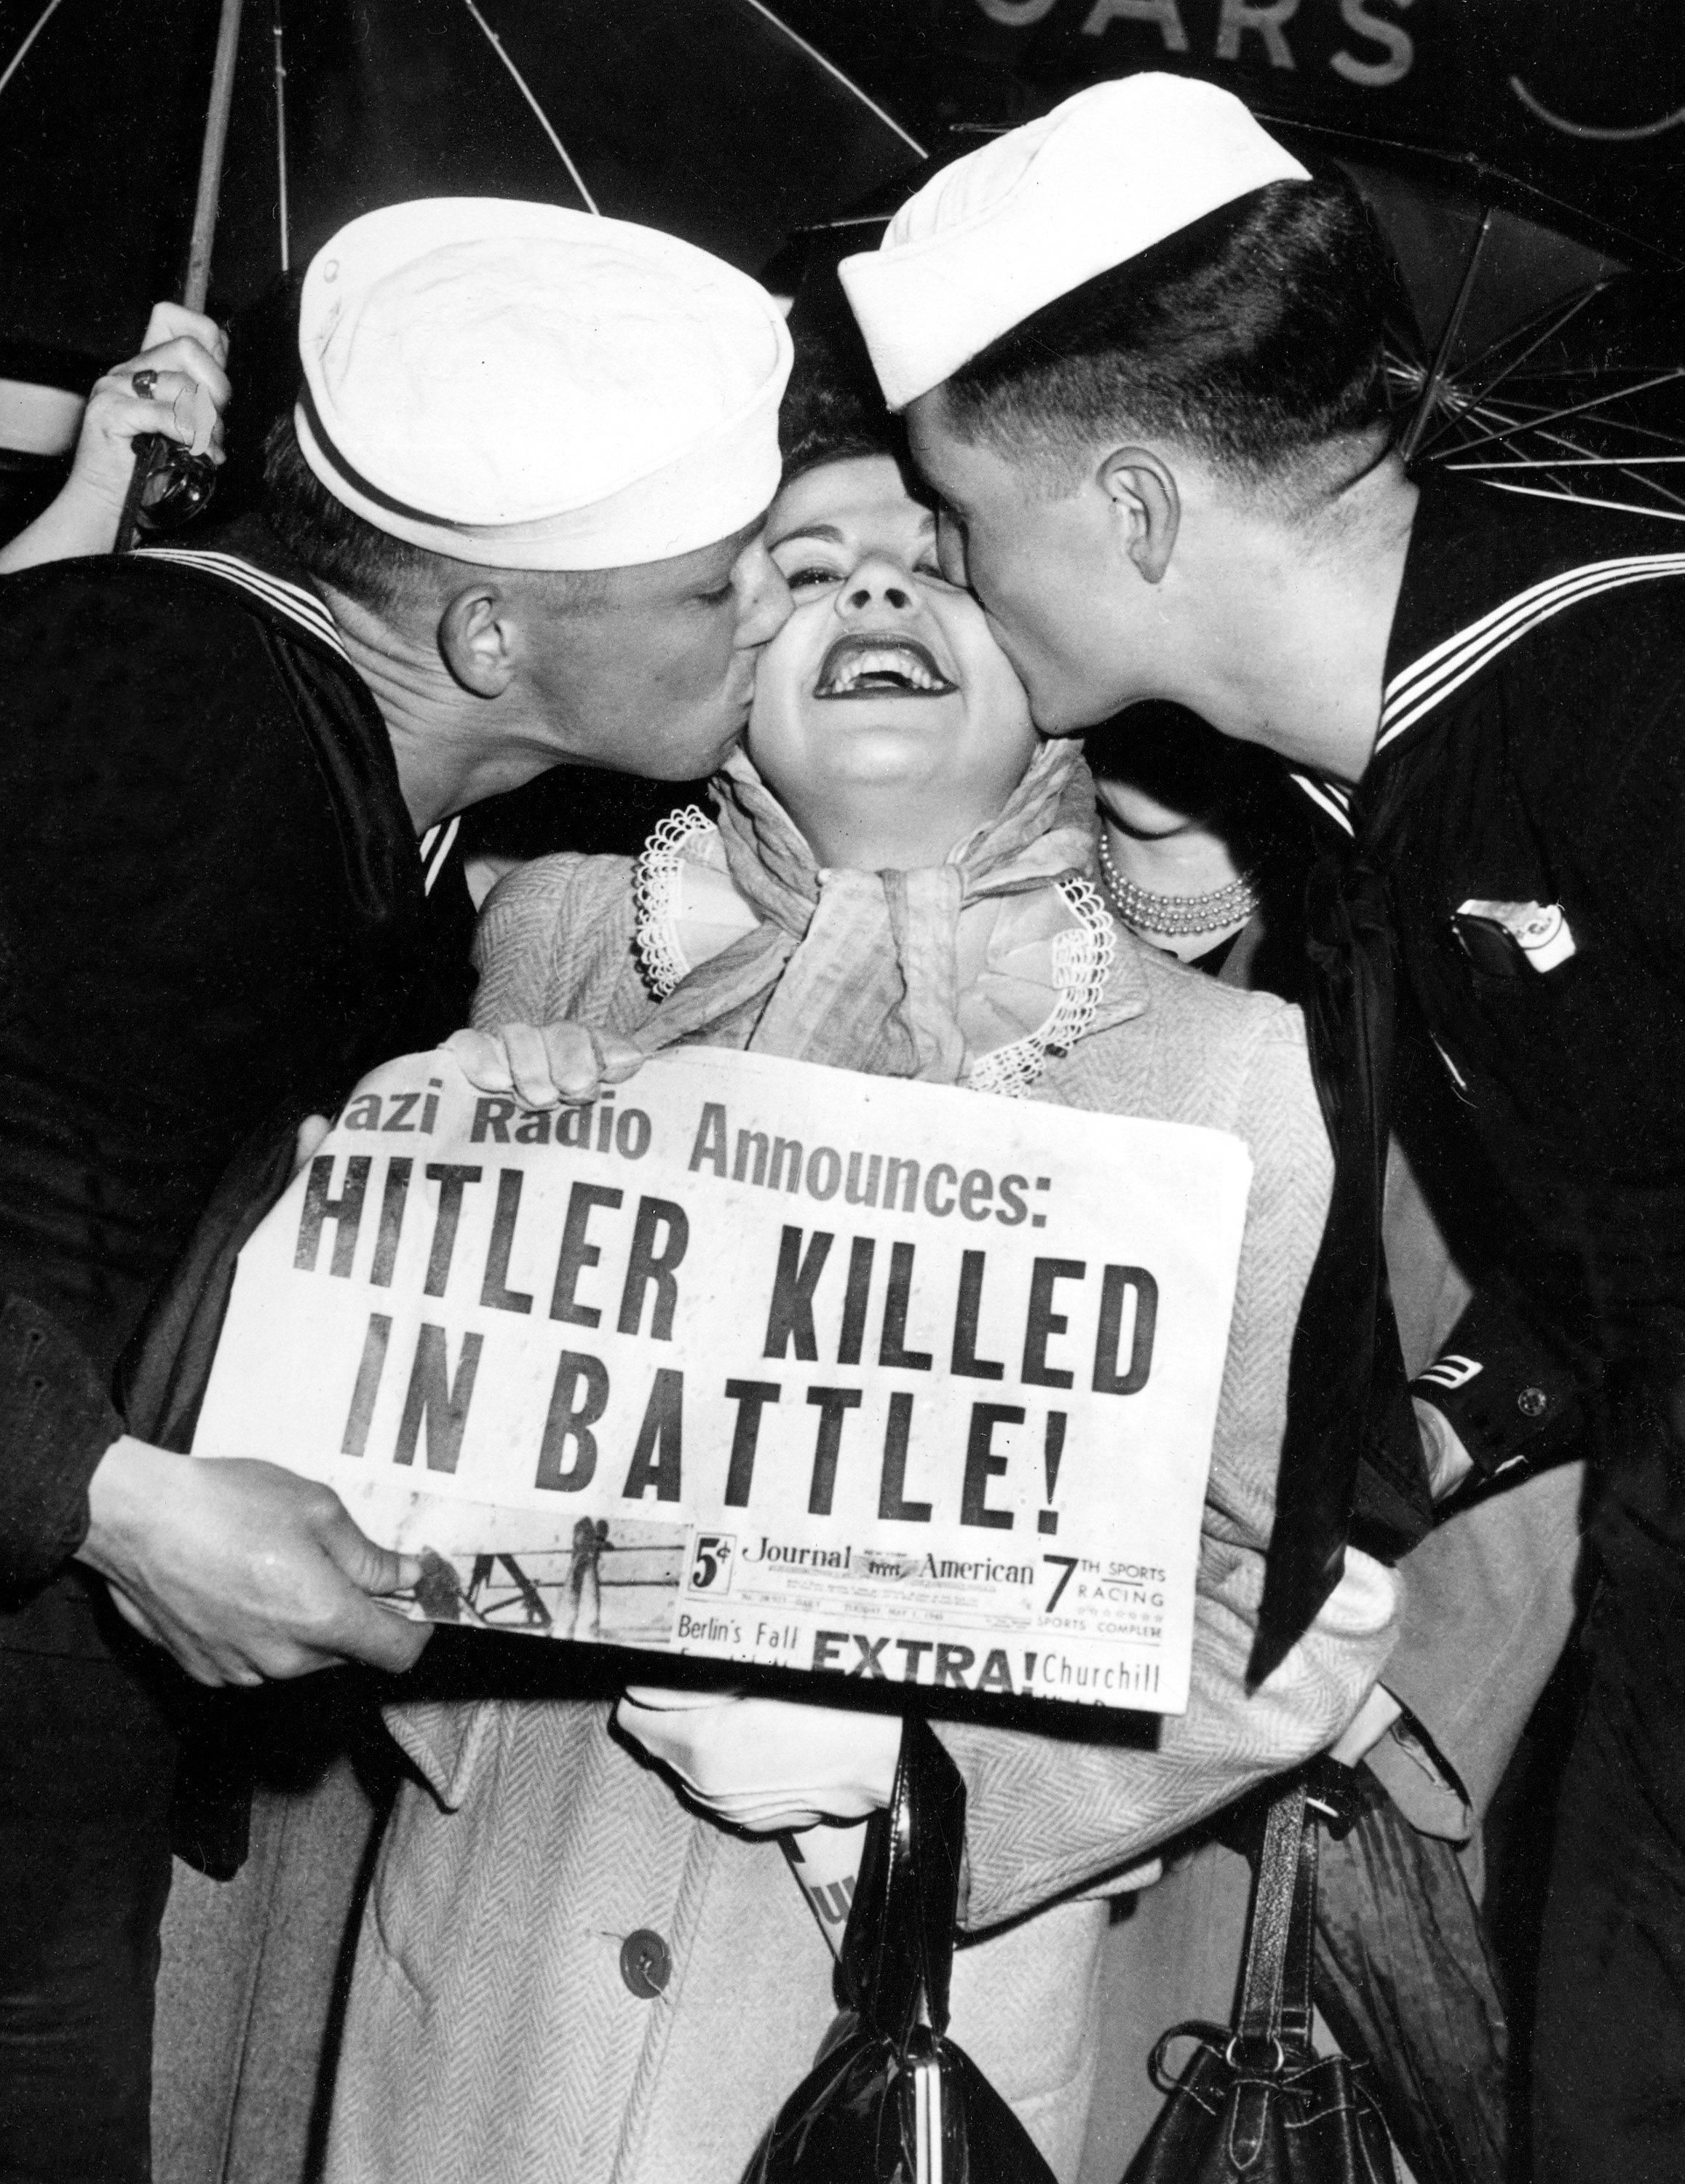 While the death of Adolf Hitler didn't lead to widespread celebration in American streets, these two U.S. sailors kiss a woman holding a newspaper announcing Hitler's death in 1945.